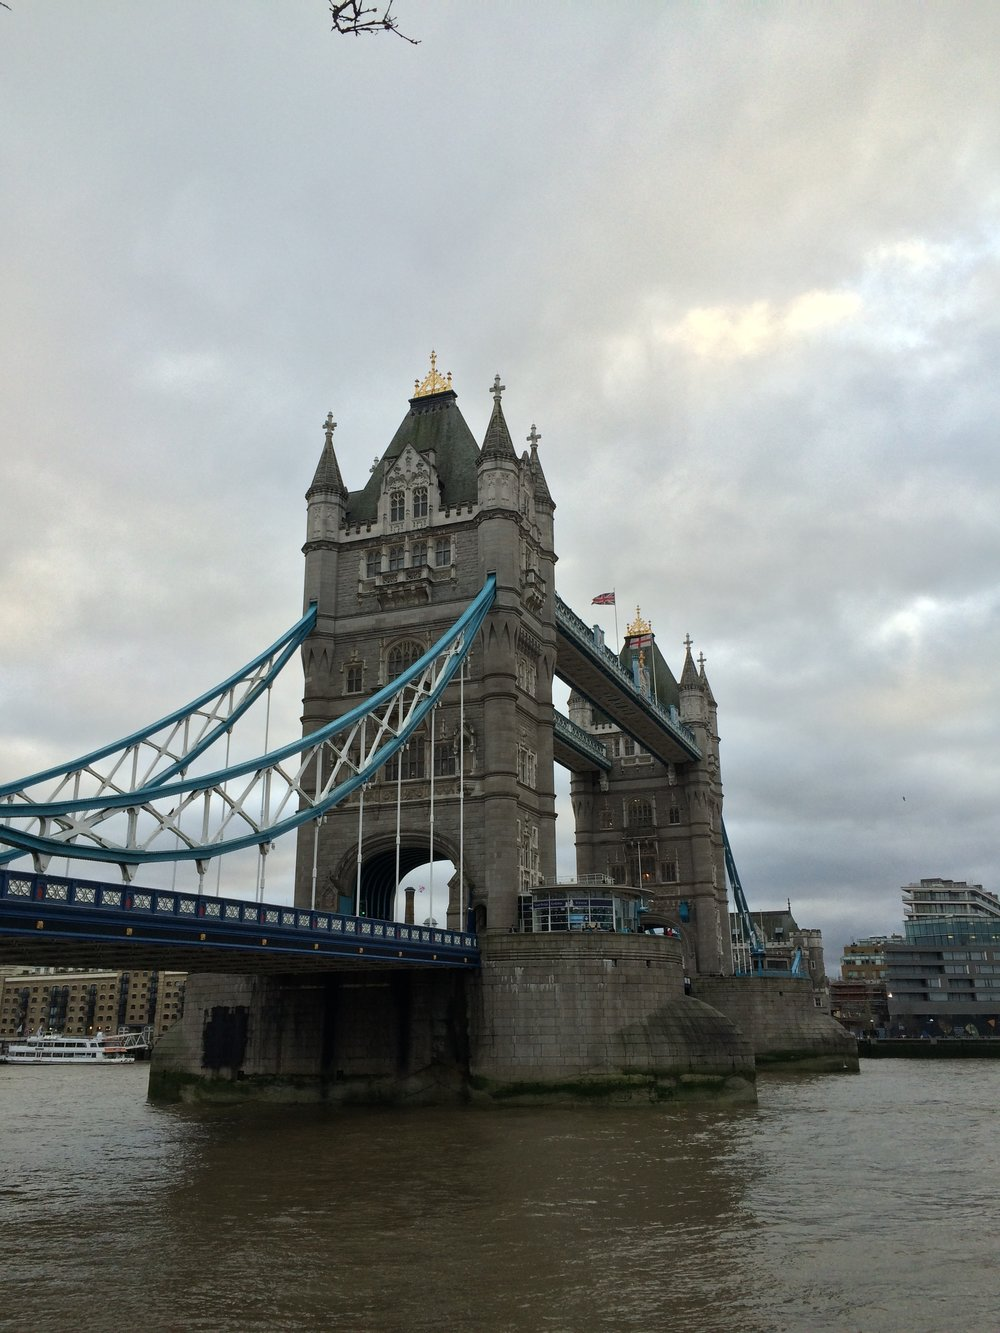 The twin towers of the Tower Bridge house the bascules that raise and lower the bridge